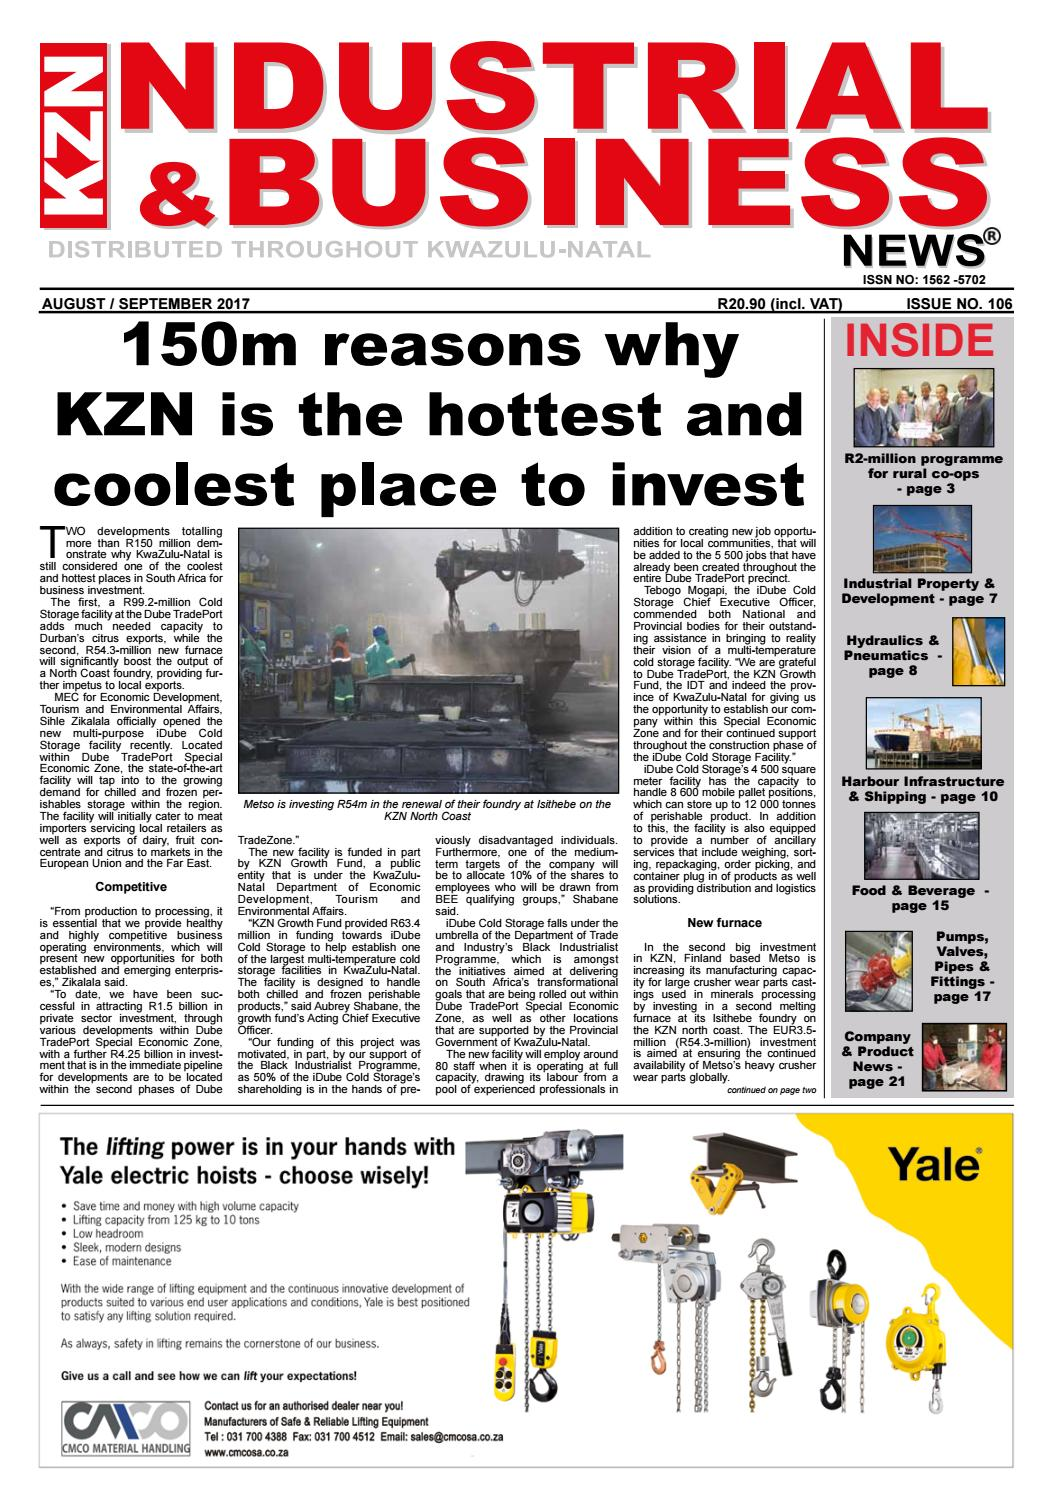 August Sept 2017 Kzn Industrial Business News Issue 106 By The Surfacemounted Junction Box 75 X Mm Ip65 Ap75 Abb Oy Wiring Media Events Company Issuu